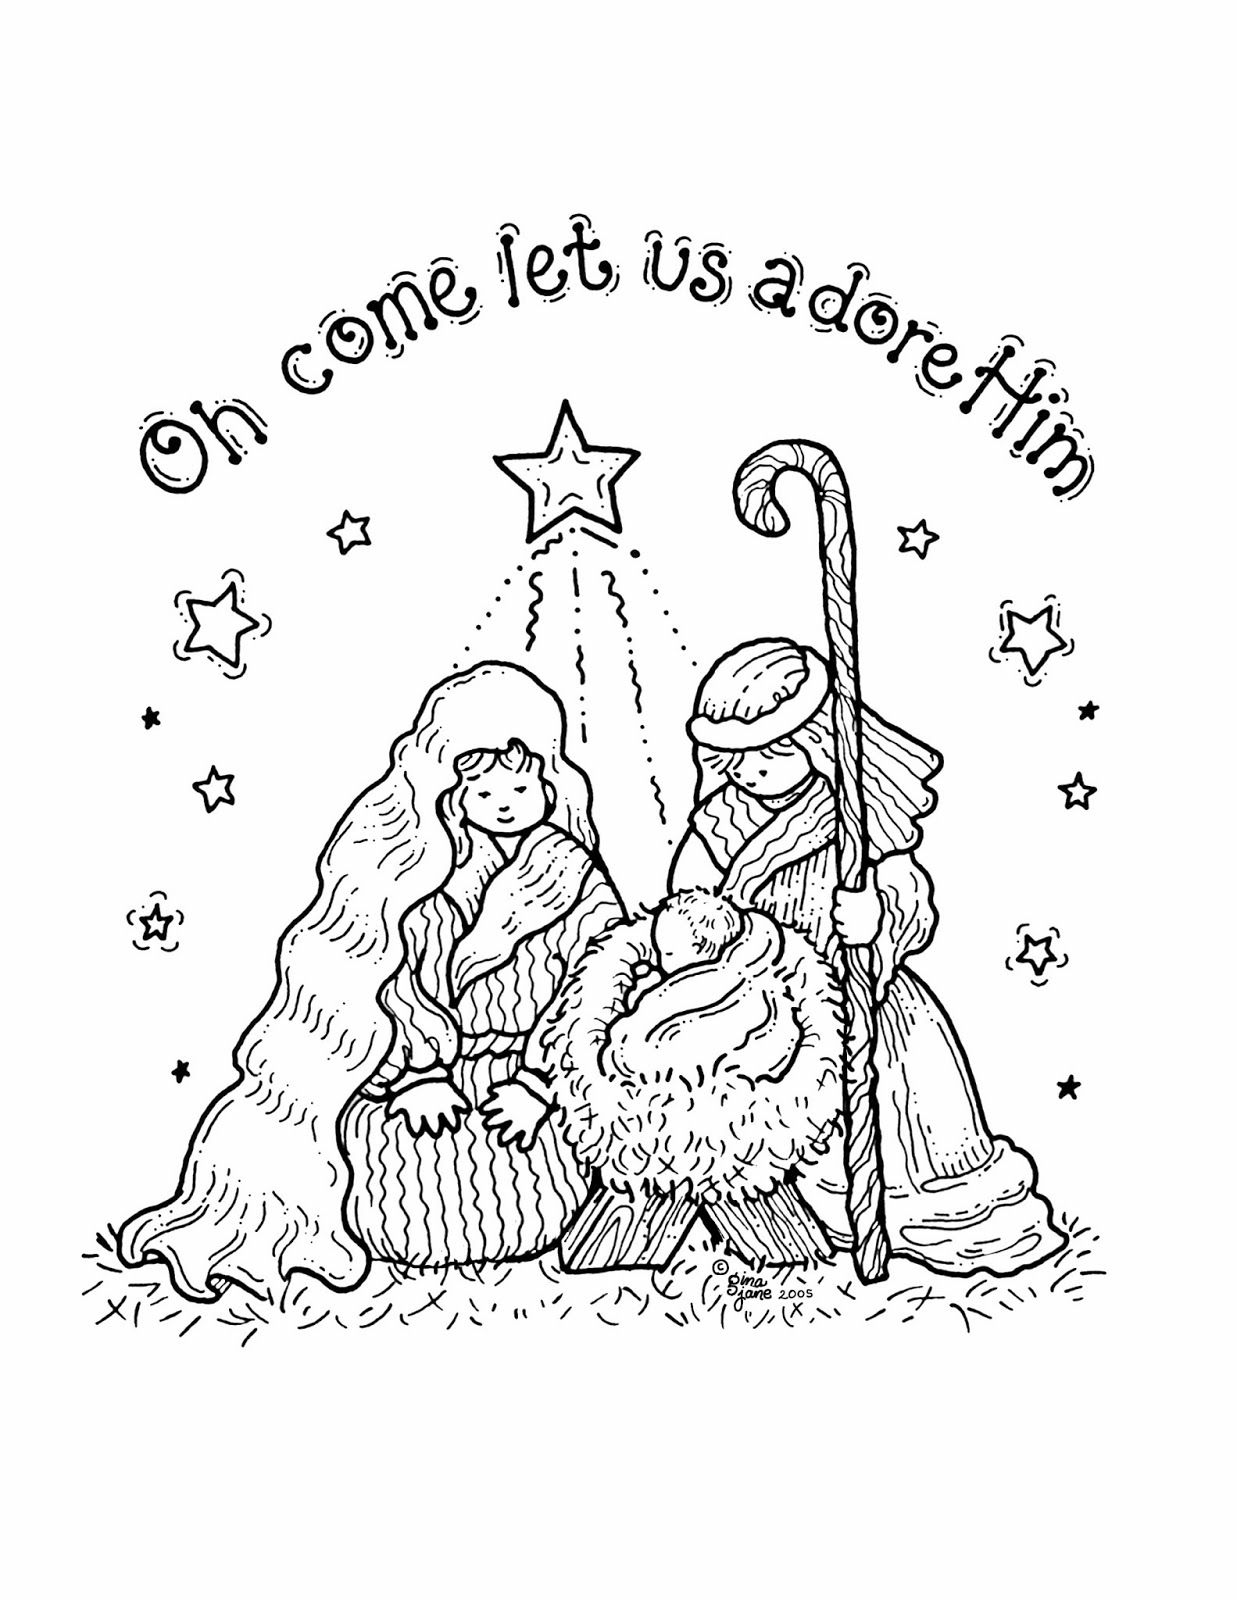 free printable nativity coloring pages Free Printable Nativity Coloring Pages for Kids | Projects to Try  free printable nativity coloring pages